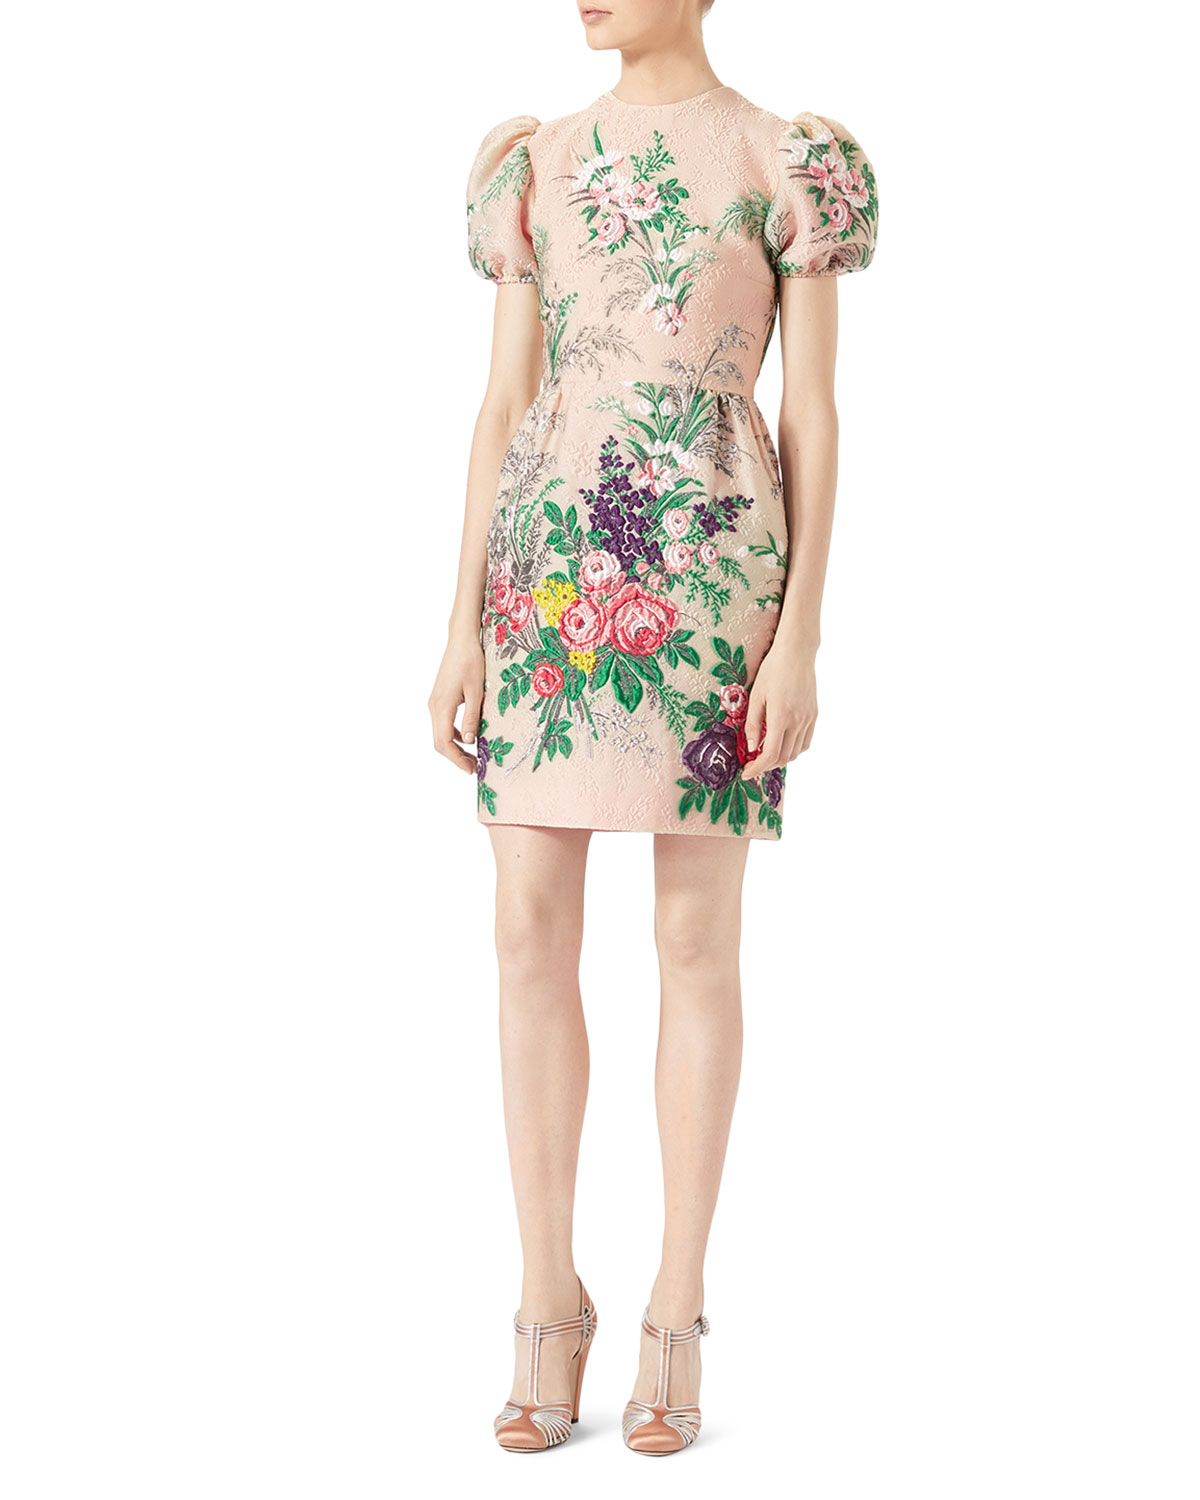 Fl Embroidered Dress